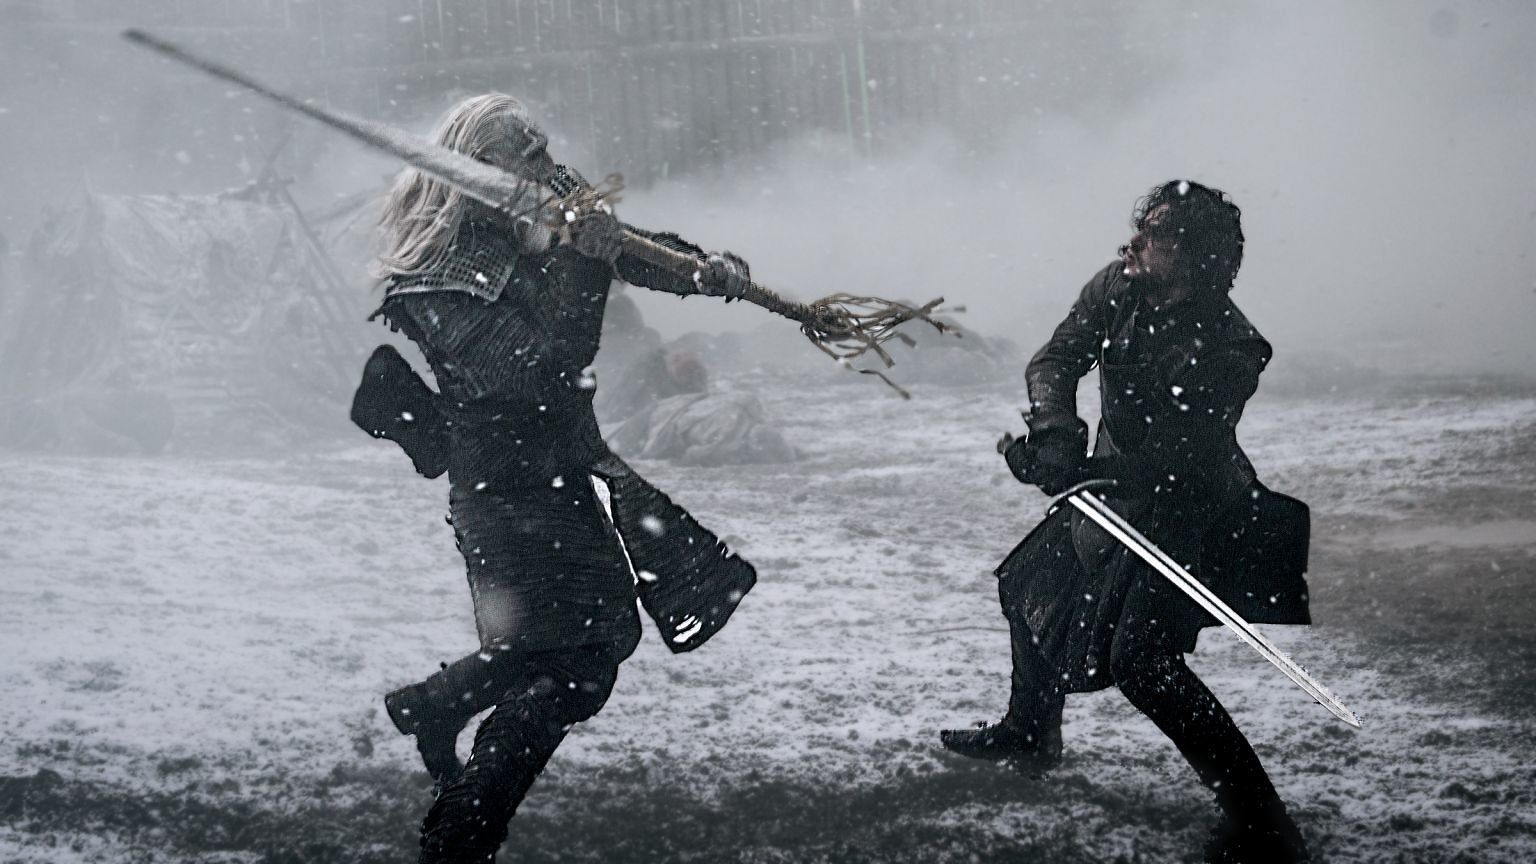 The Battle of Winterfell Game of Thrones